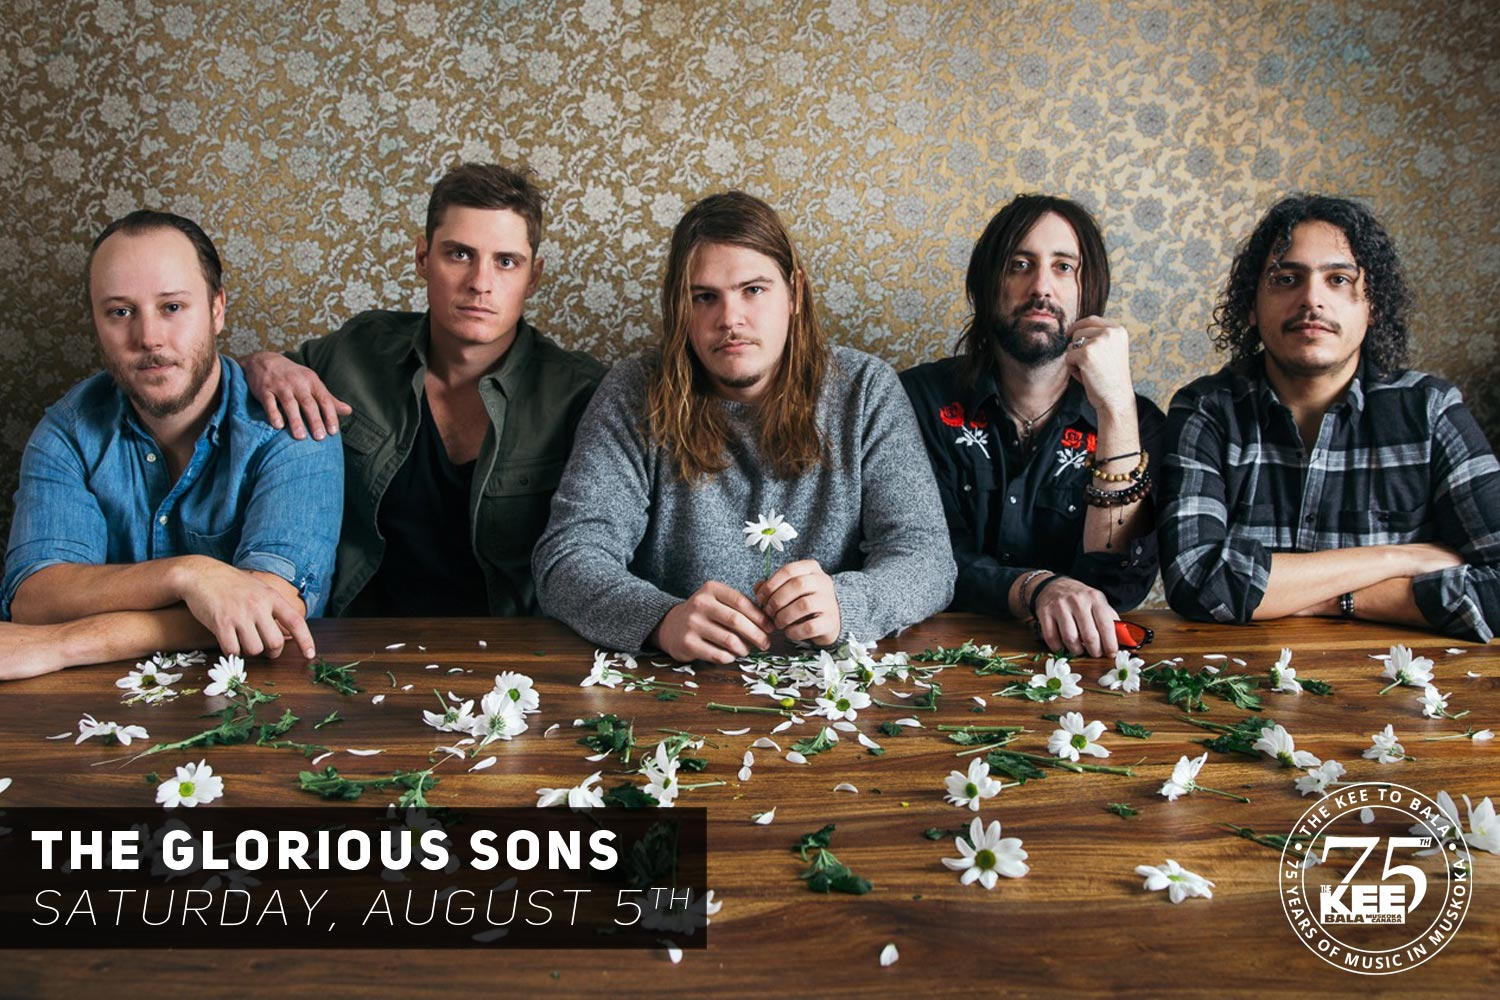 The Glorious Sons at The KEE to Bala